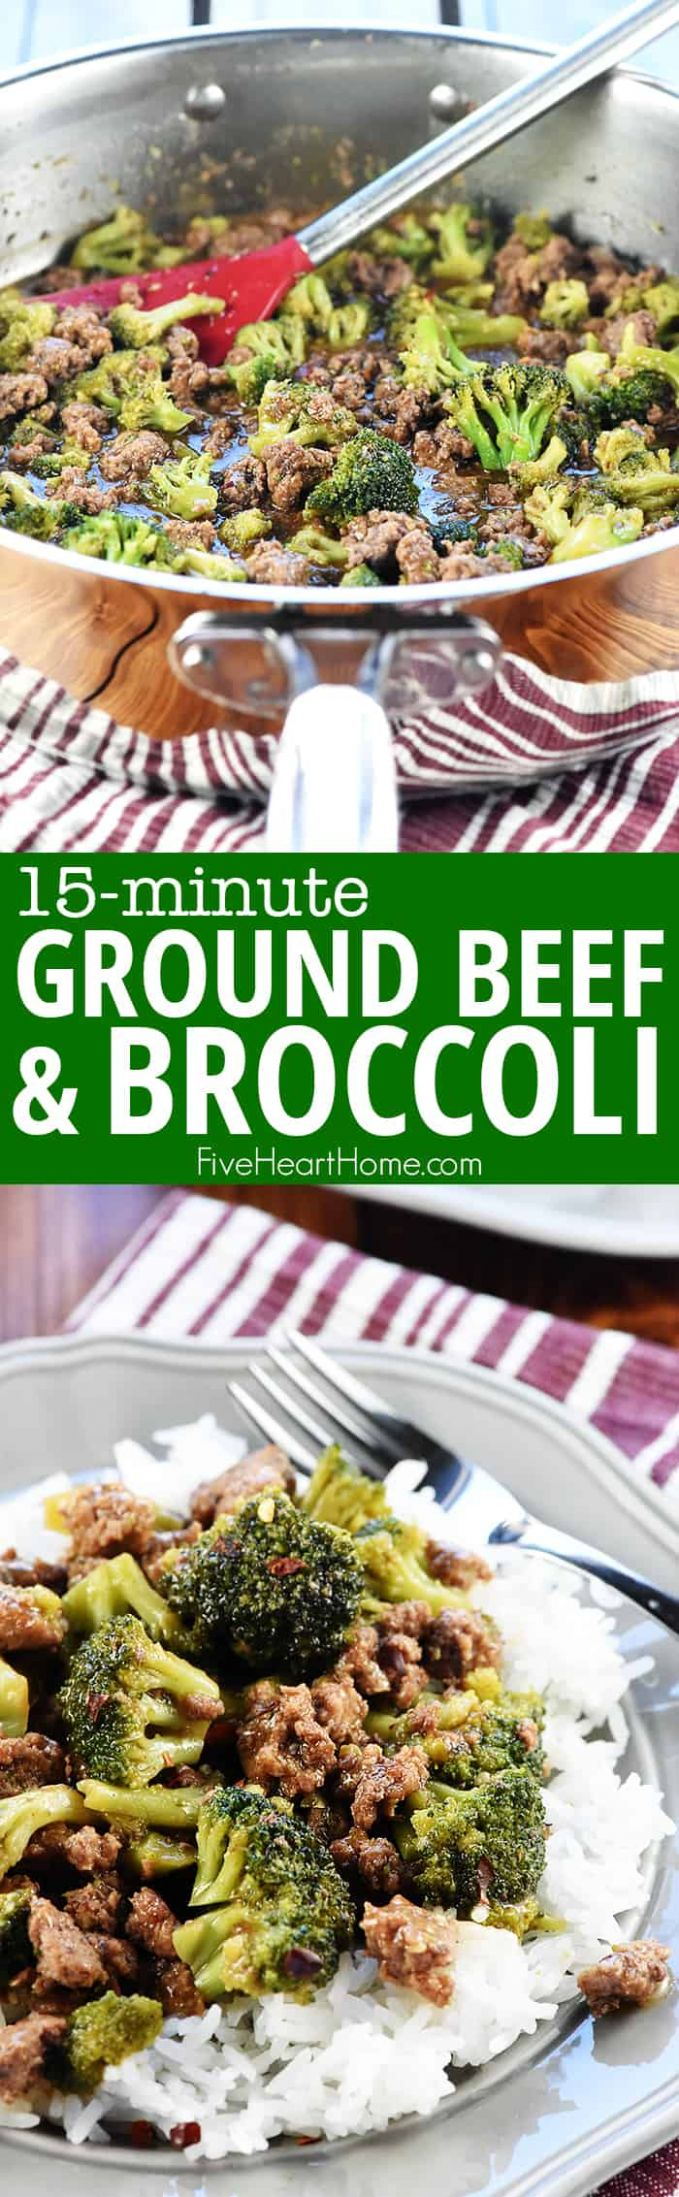 Ground Beef and Broccoli